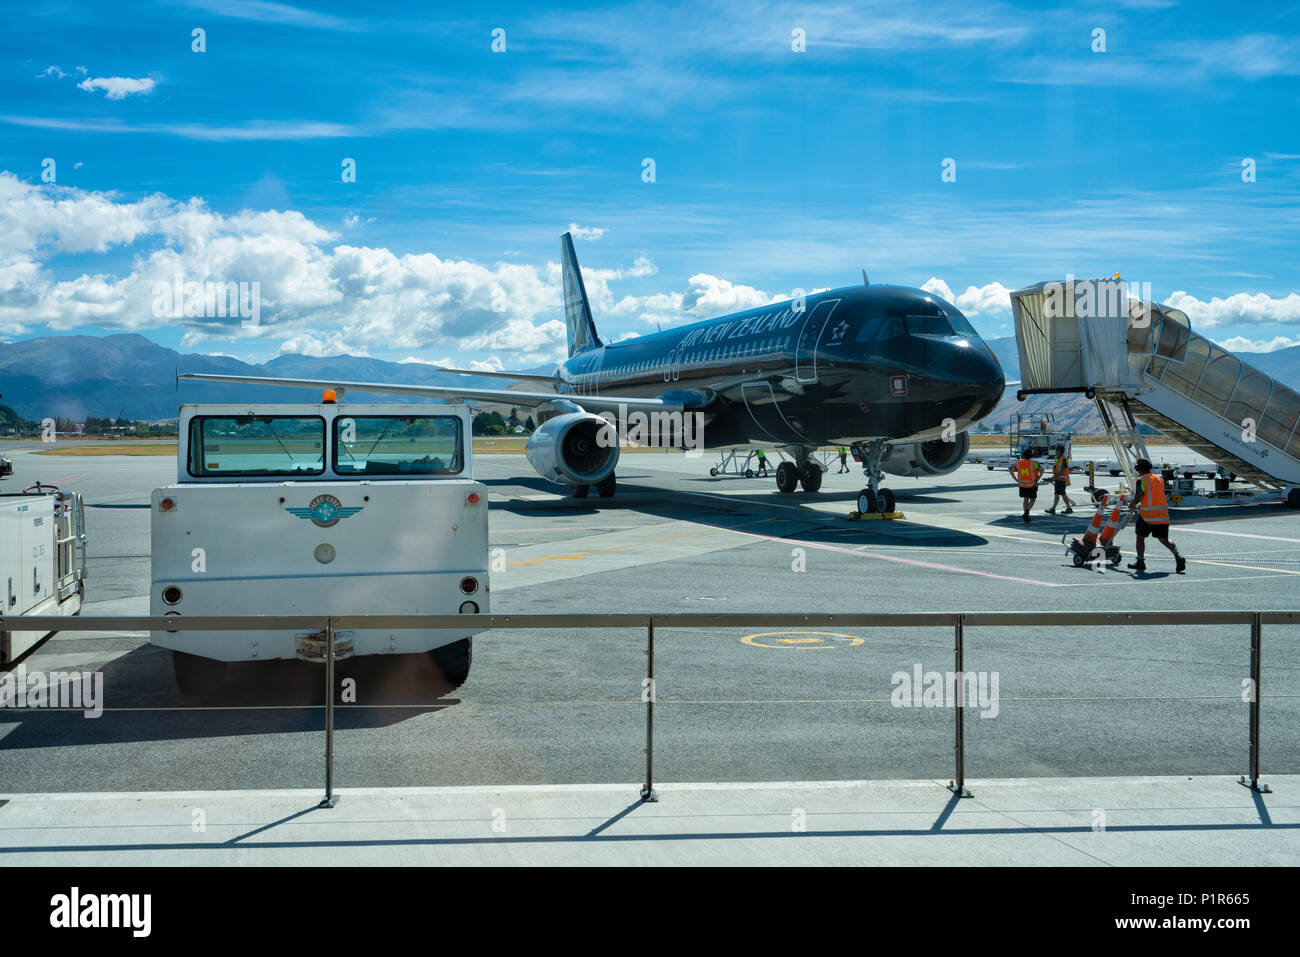 Queenstown, New Zealand - January 19, Air New Zealand Black Livery Airbus being prepared for takeoff at Queenstown Airport - Stock Image